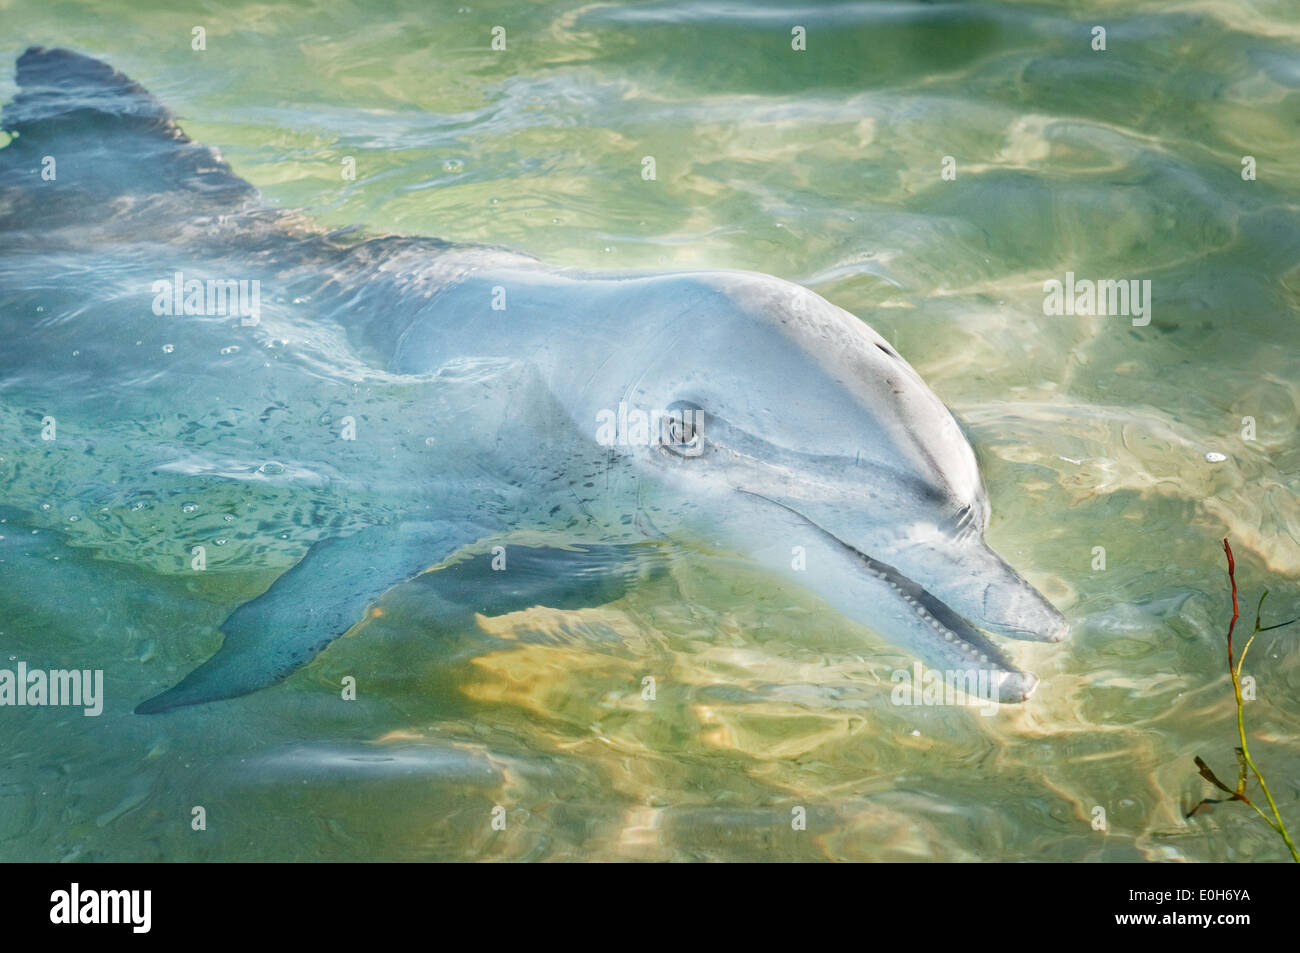 Bottlenose Dolphin in shallow water. - Stock Image